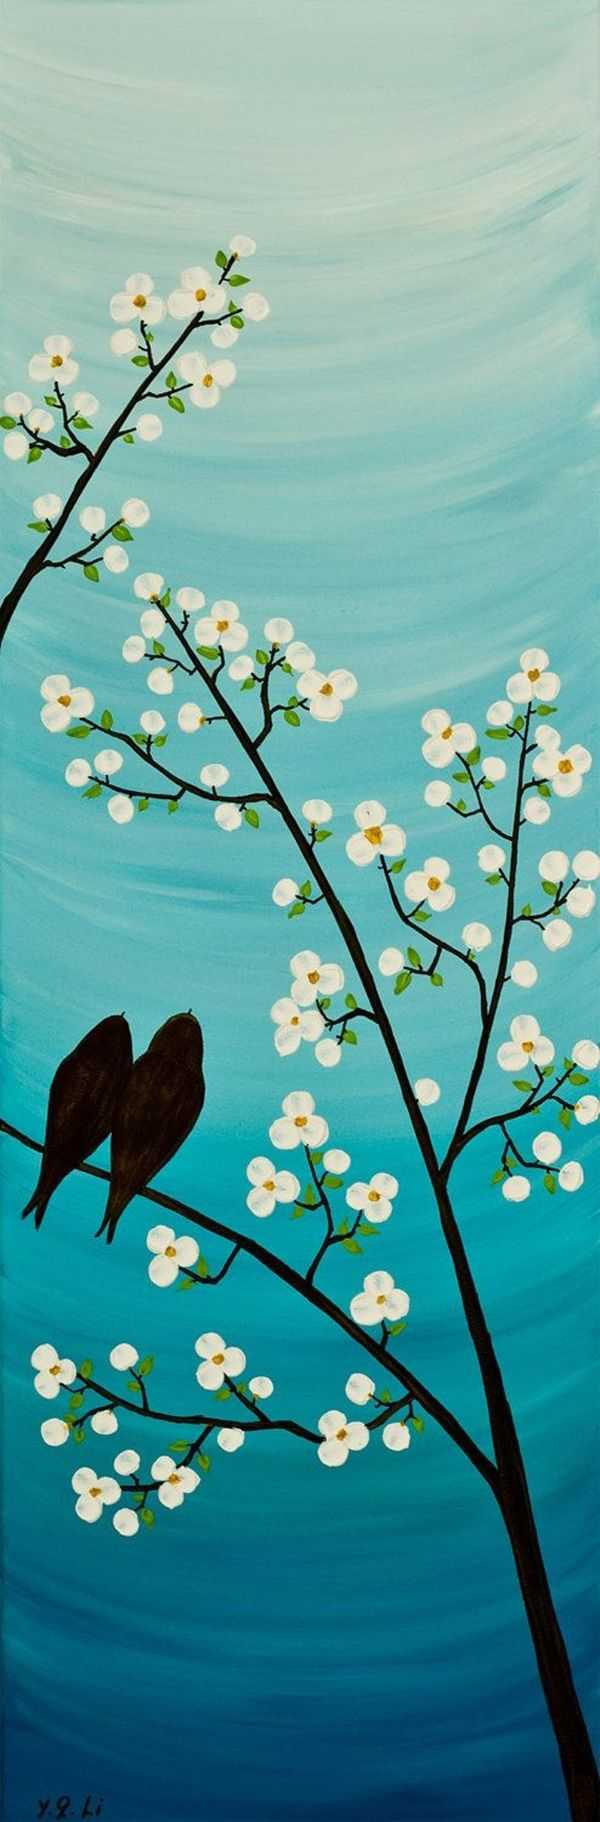 Easy Nature Painting Ideas : nature, painting, ideas, Simple, Landscape, Painting, Ideas, Painting,, Paintings,, Projects